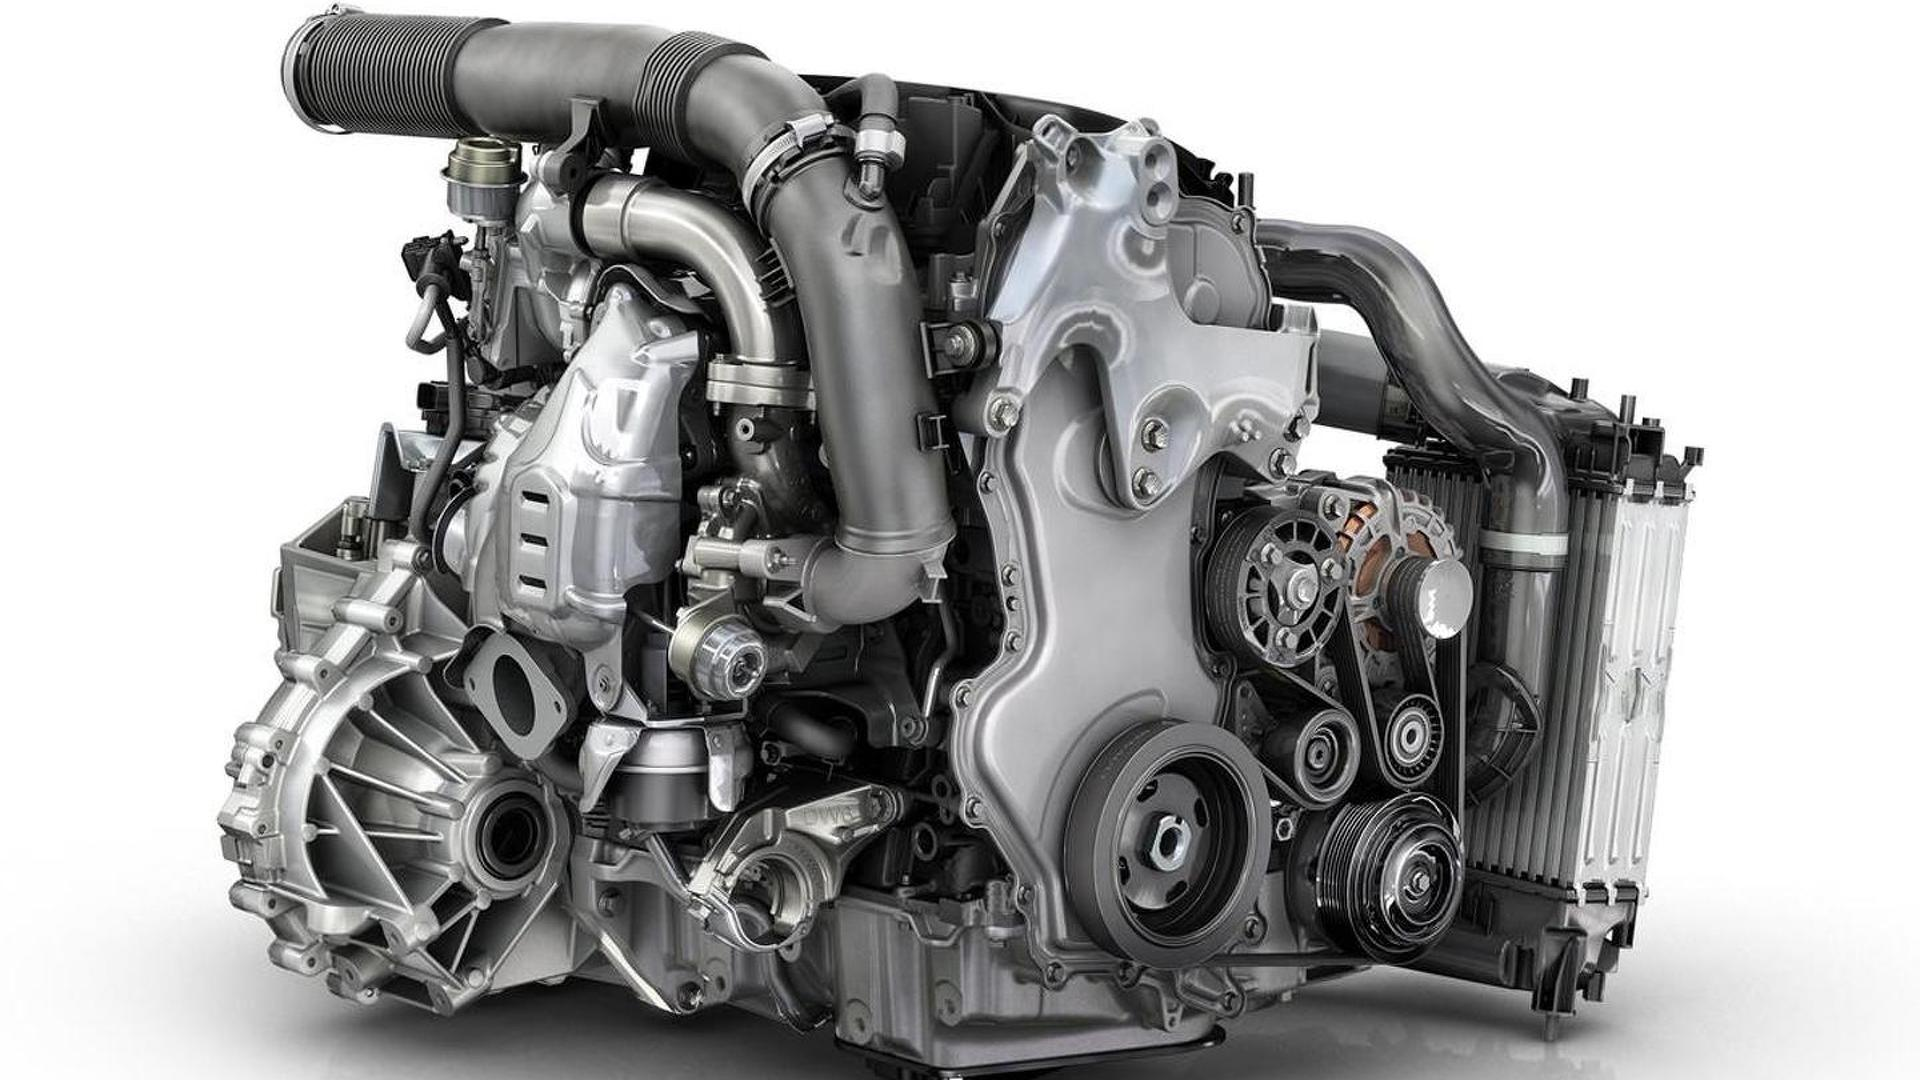 Renault reveals 1.6-liter Energy dCi twin-turbo engine with 160 HP